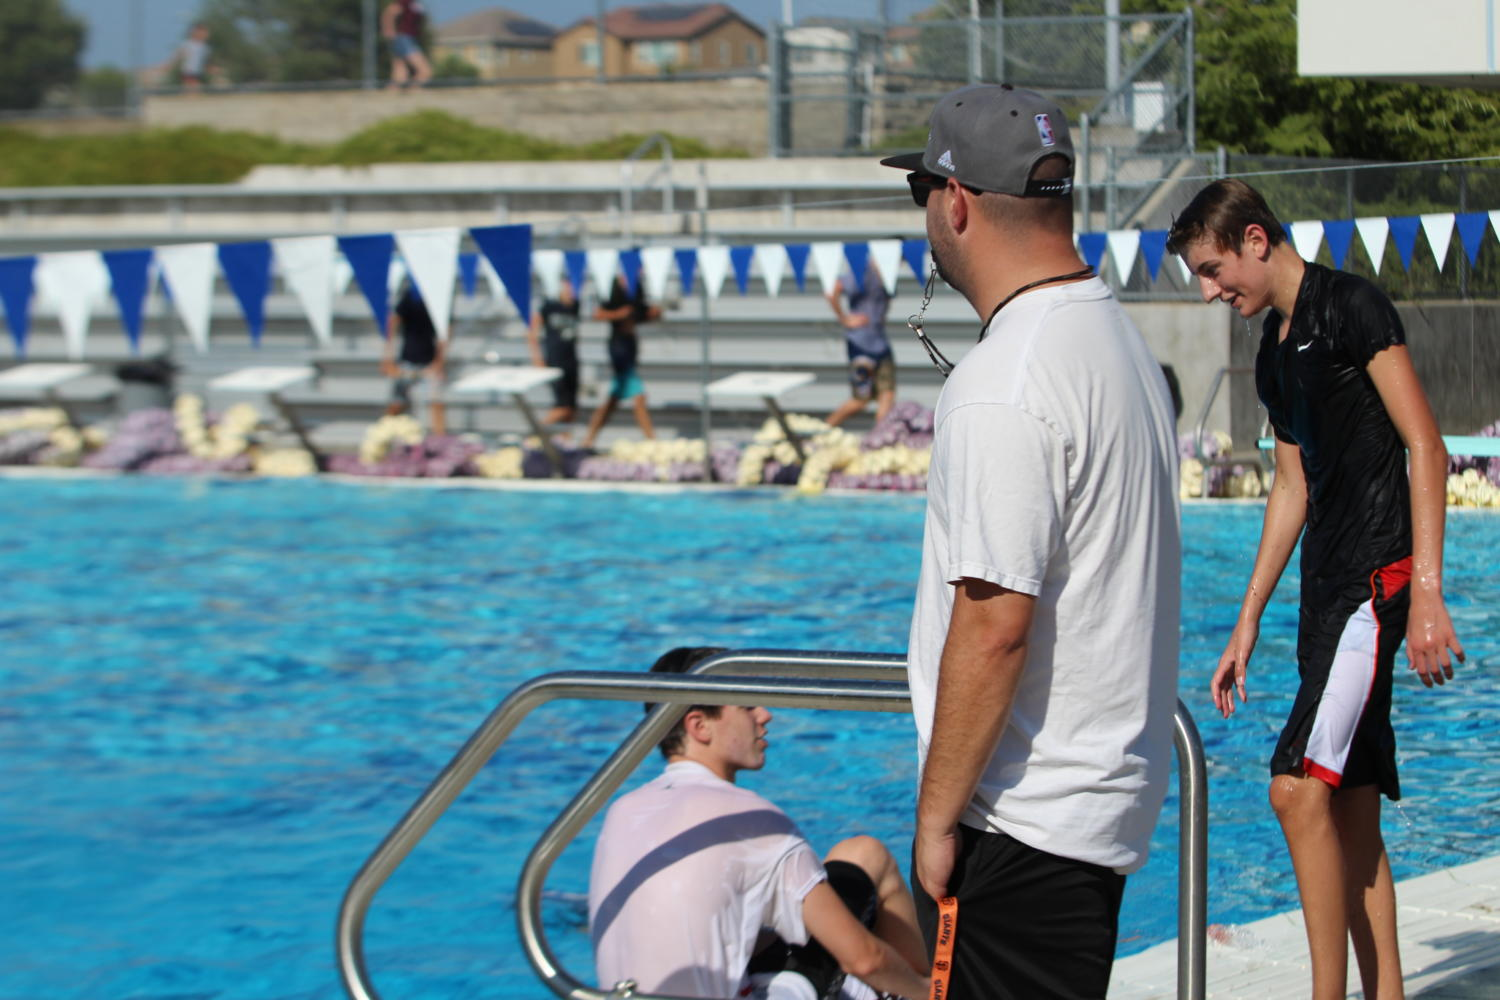 Coach+Jon+Norris+leads+dryland+during+men%E2%80%99s+varsity+water+polo+practice.+Photo+by+Madilyn+Sindelar.%0A